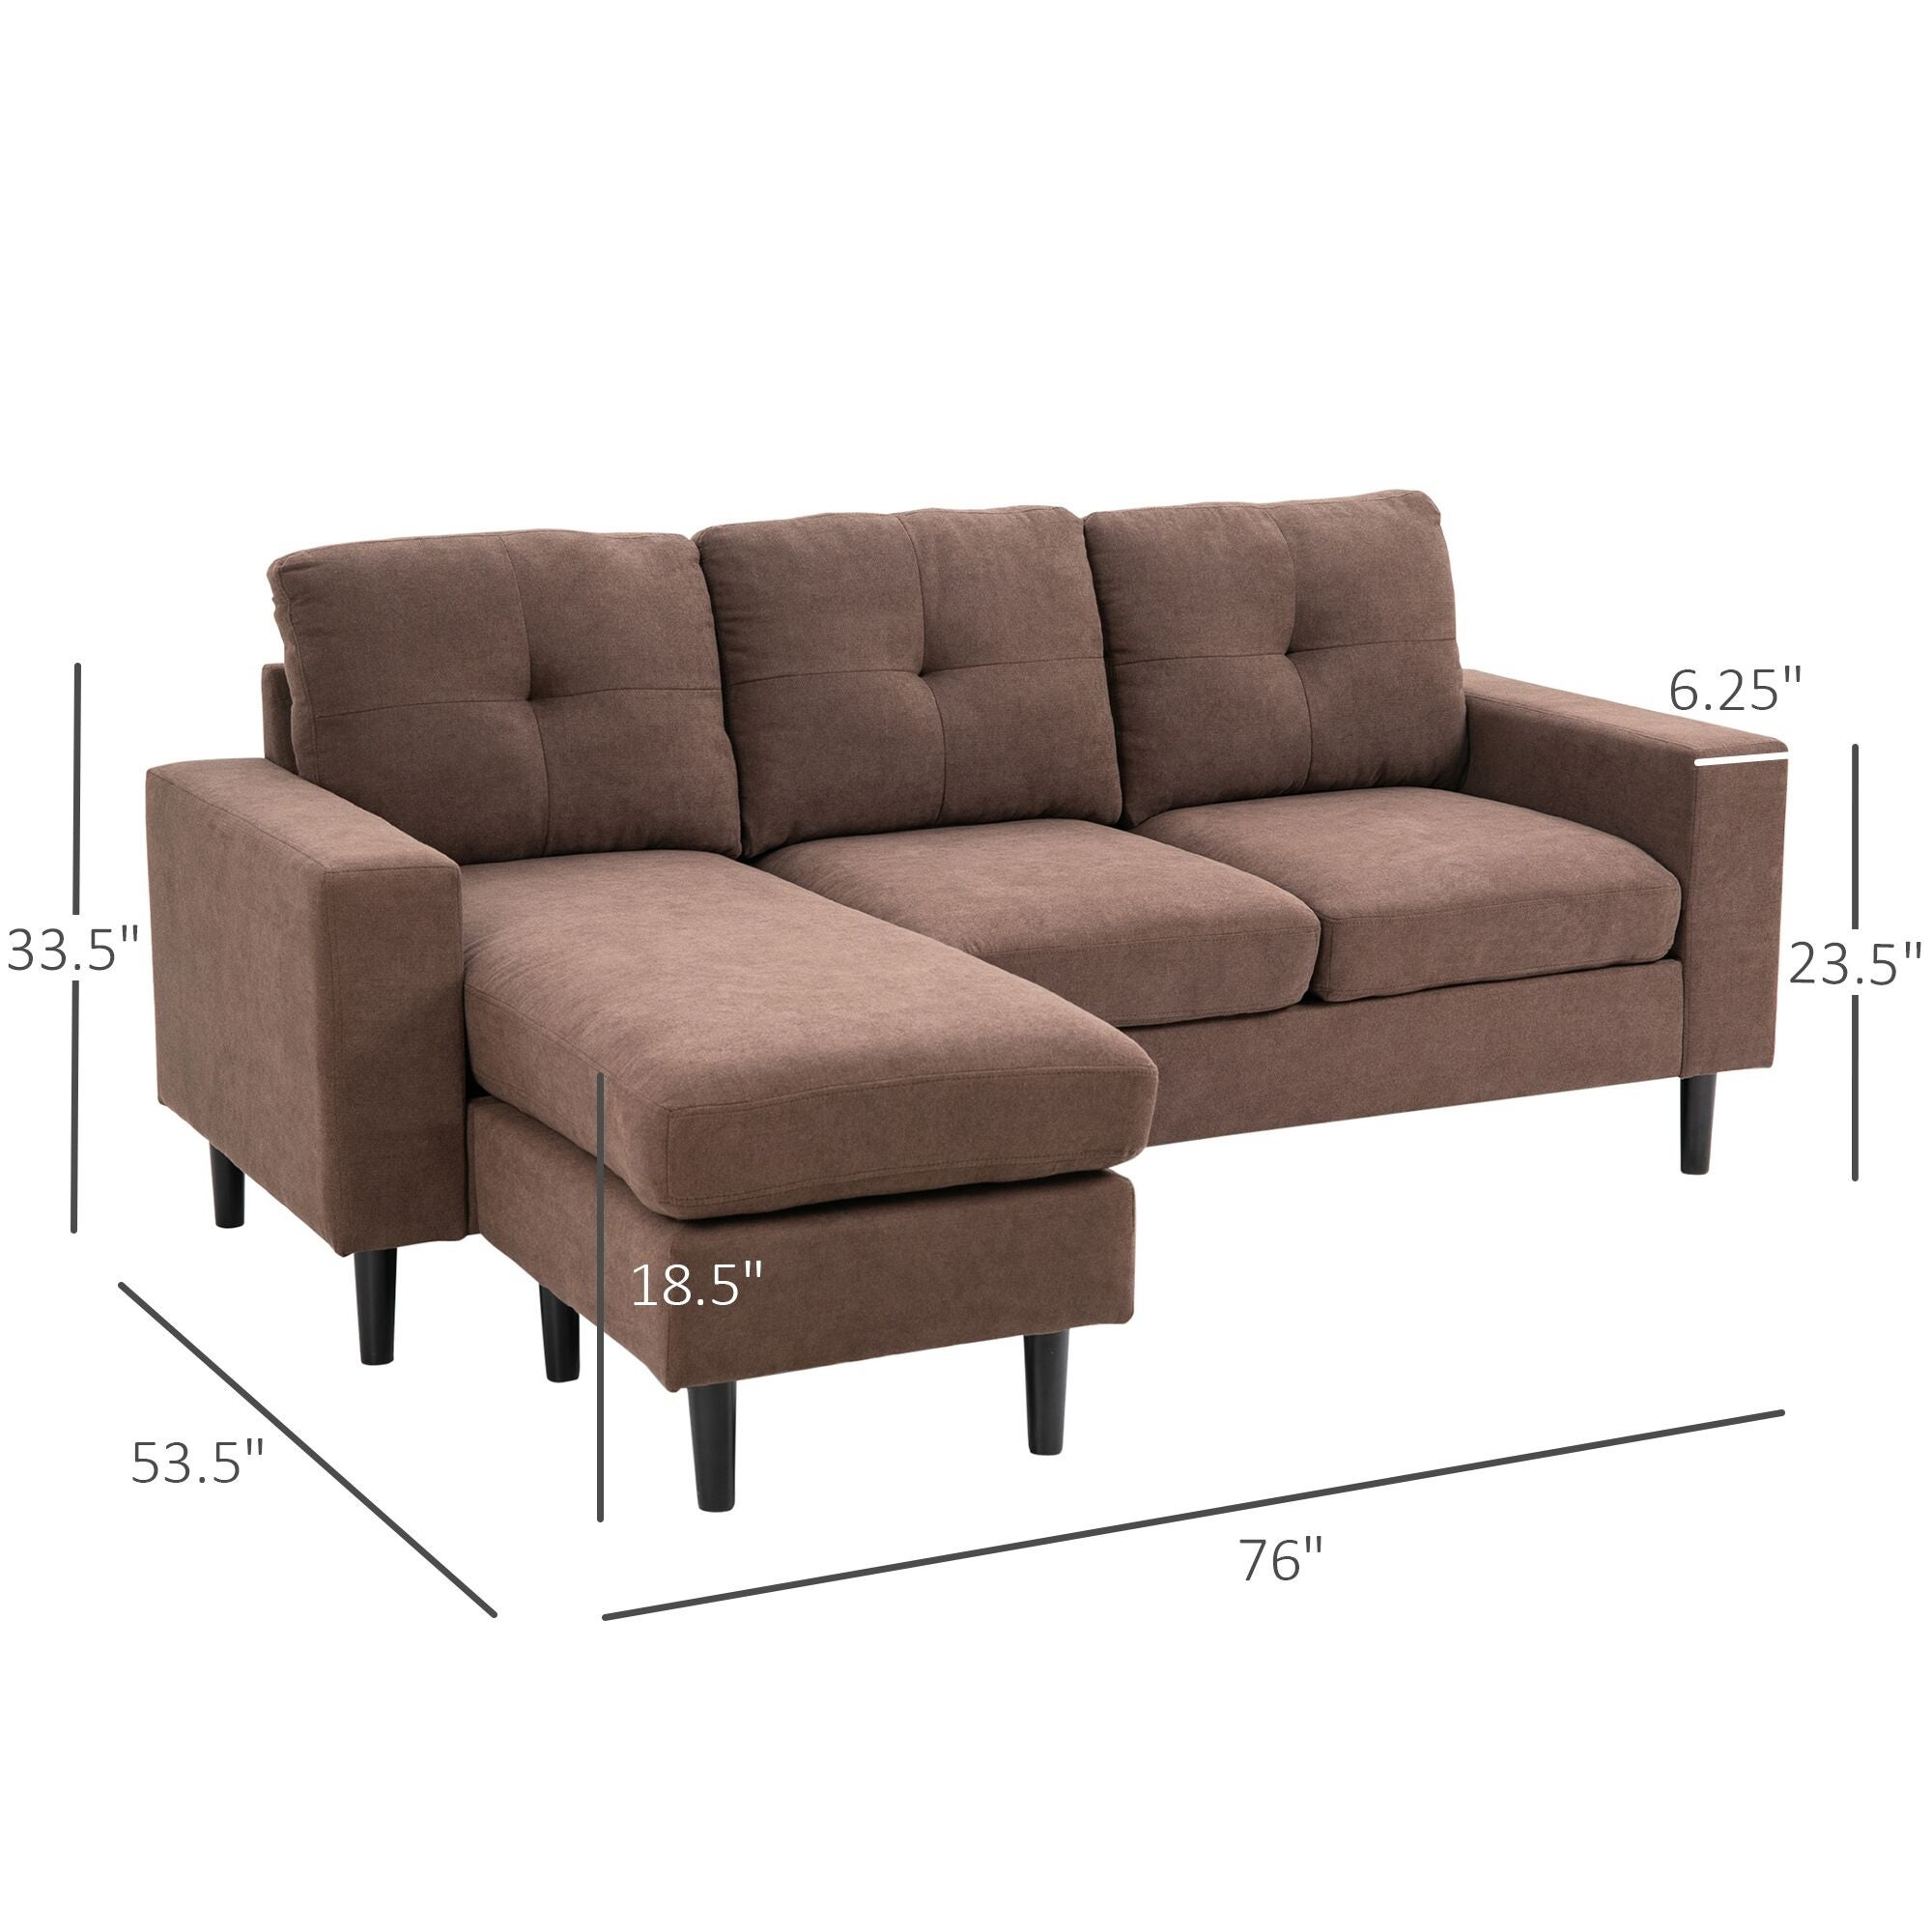 Shop Homcom 3 Piece L Shape Chaise Lounger Modern Couch Set With Thick Sponge Cushions Modern Mid Century Style On Sale Overstock 32200173 Brown